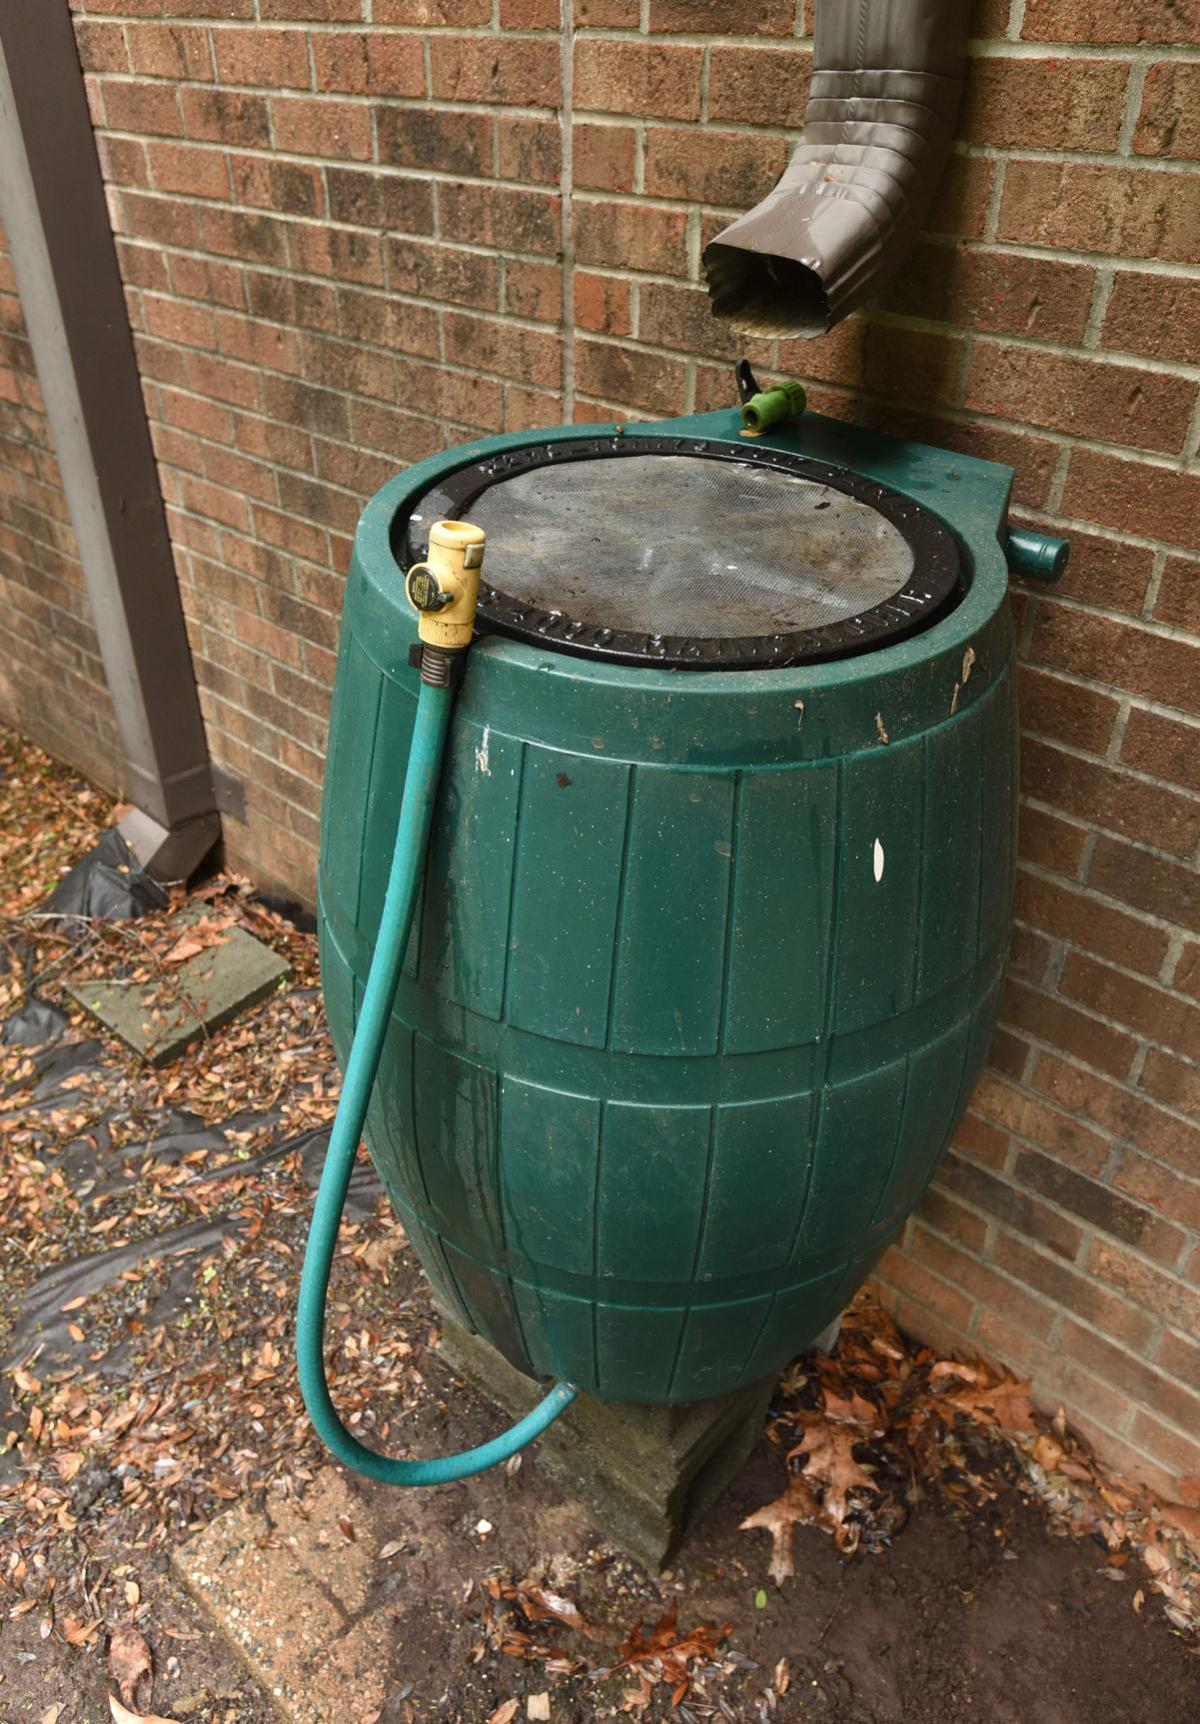 Cisterns Barrels Help Collect Rainwater For Gardens Food